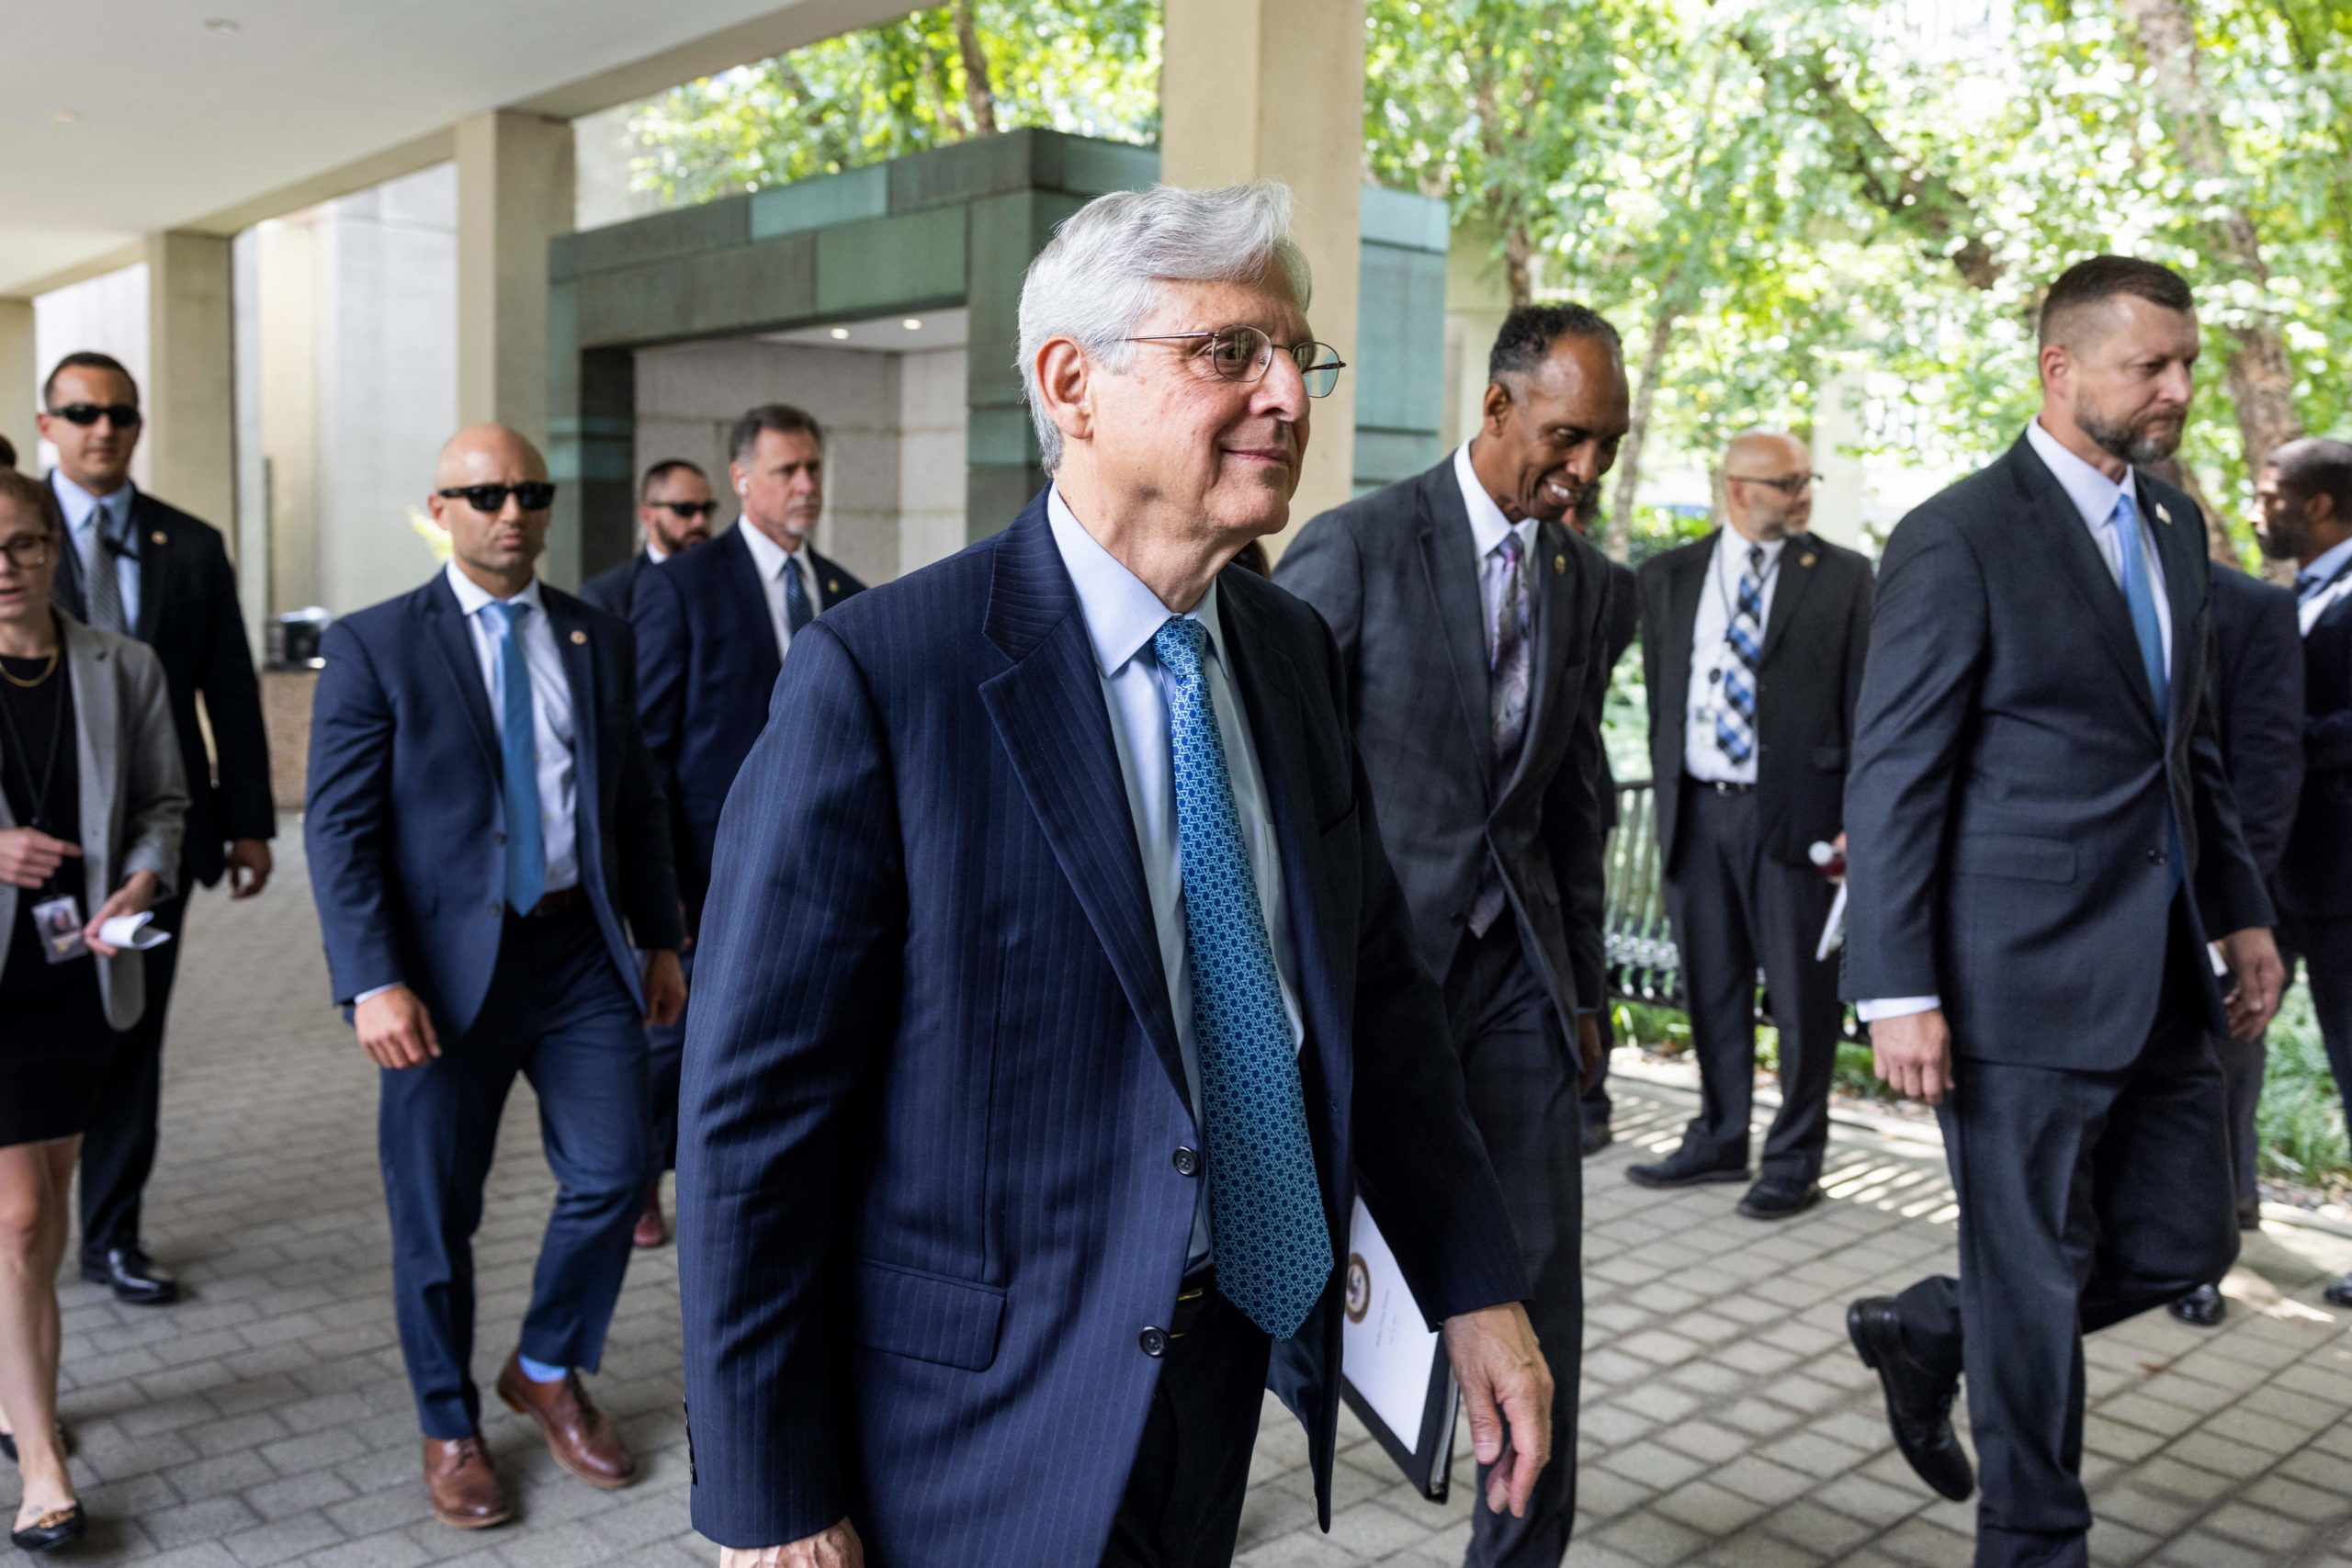 """US Attorney General Merrick Garland arrives to announce the launch of the Justice Department's """"five cross-jurisdictional trafficking strike forces"""" at the ATF in Washington, DC, on 22 July, 2021. (Photo by JIM LO SCALZO/POOL/AFP via Getty Images)"""